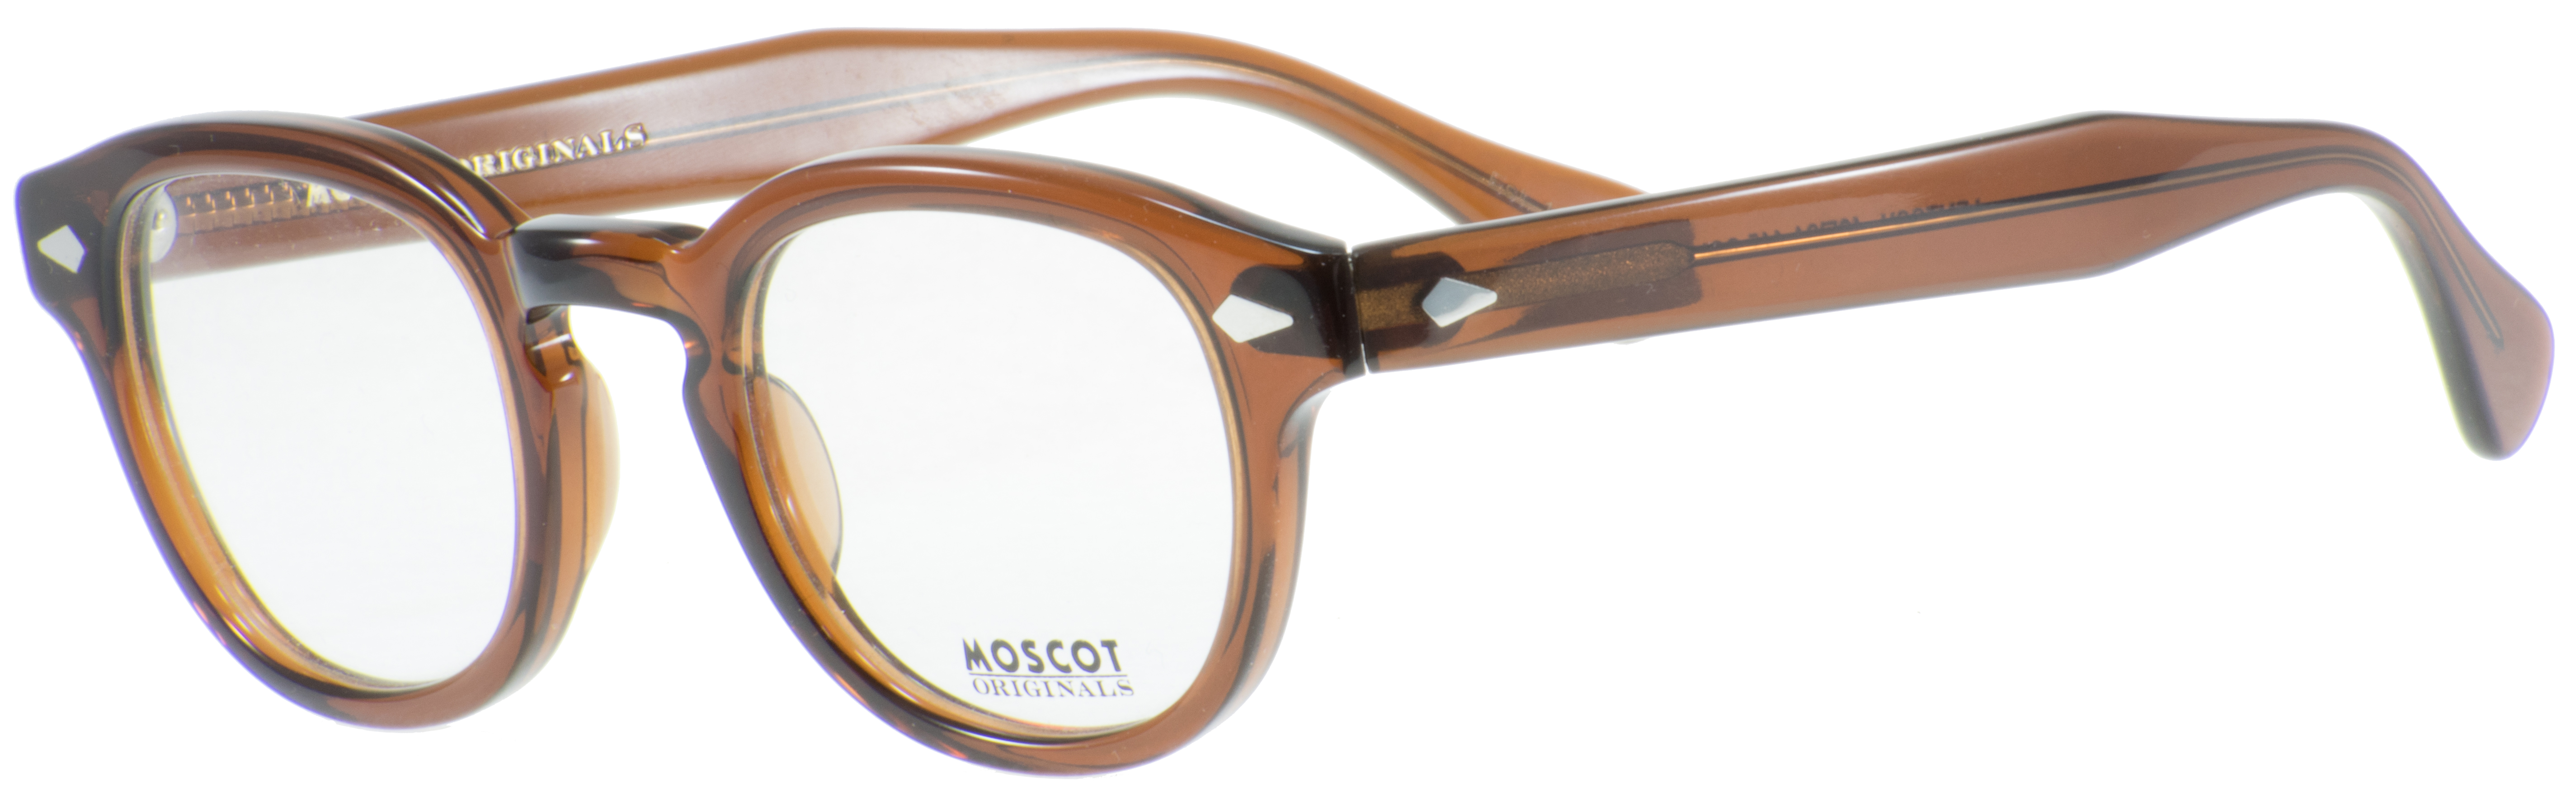 MOSCOT LEMTOSH 46 BROWN1060030602